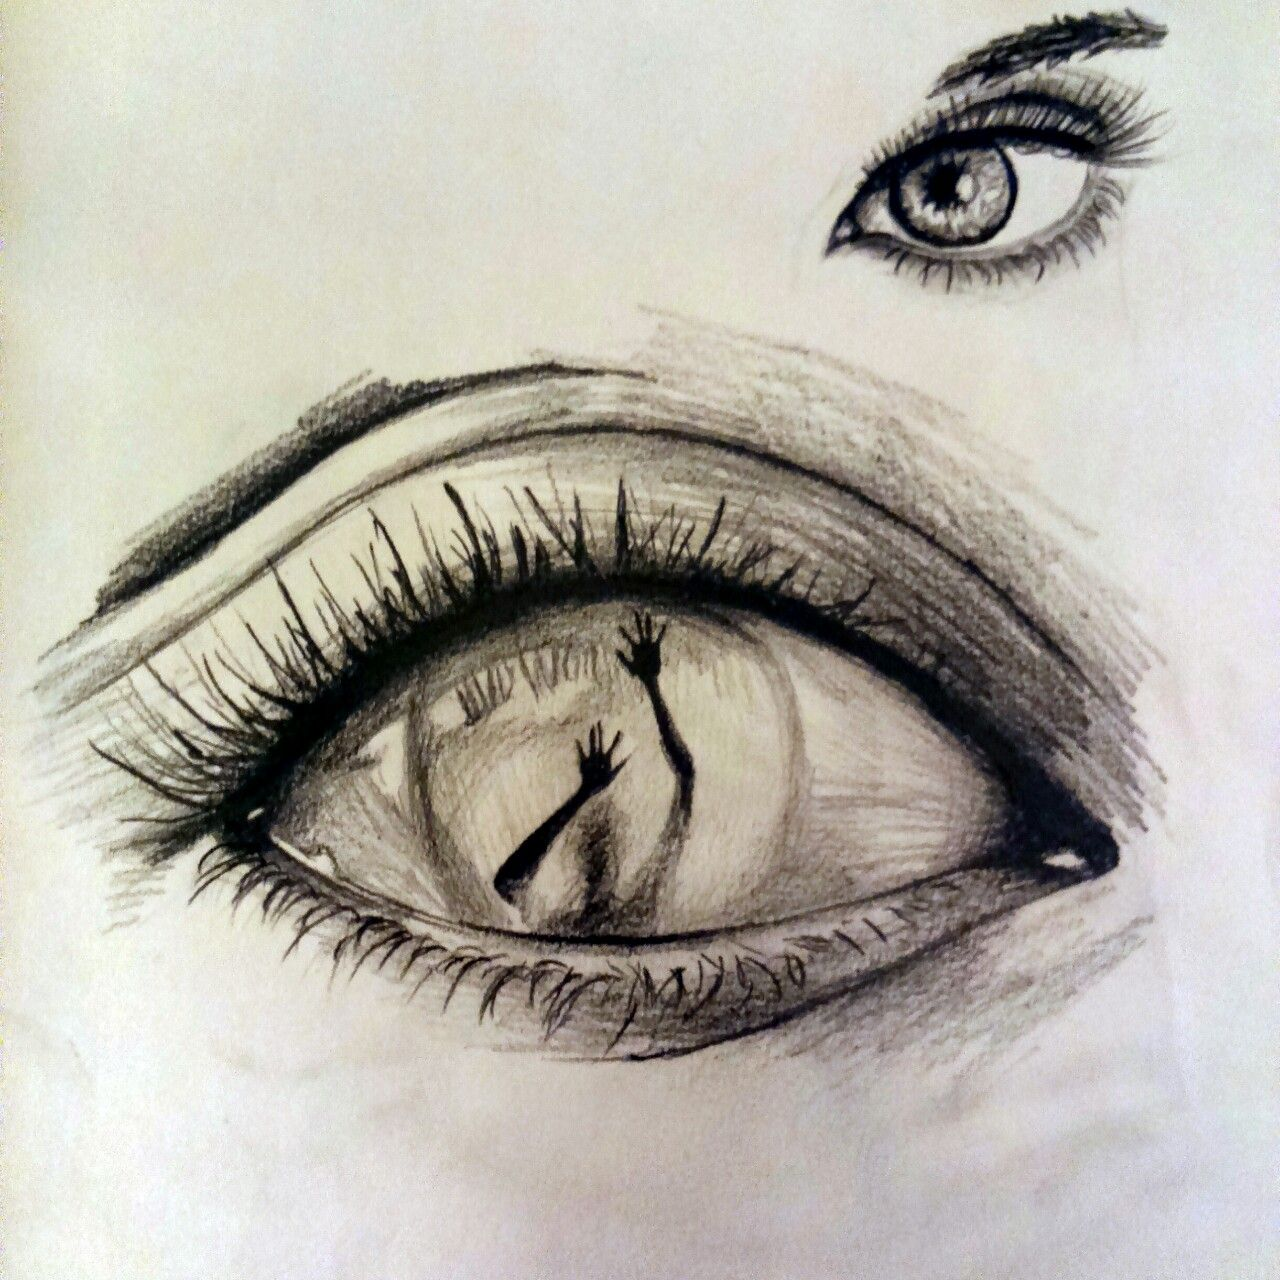 Resultado de imagen de drawing ideas tumblr eyes for Drawing design ideas